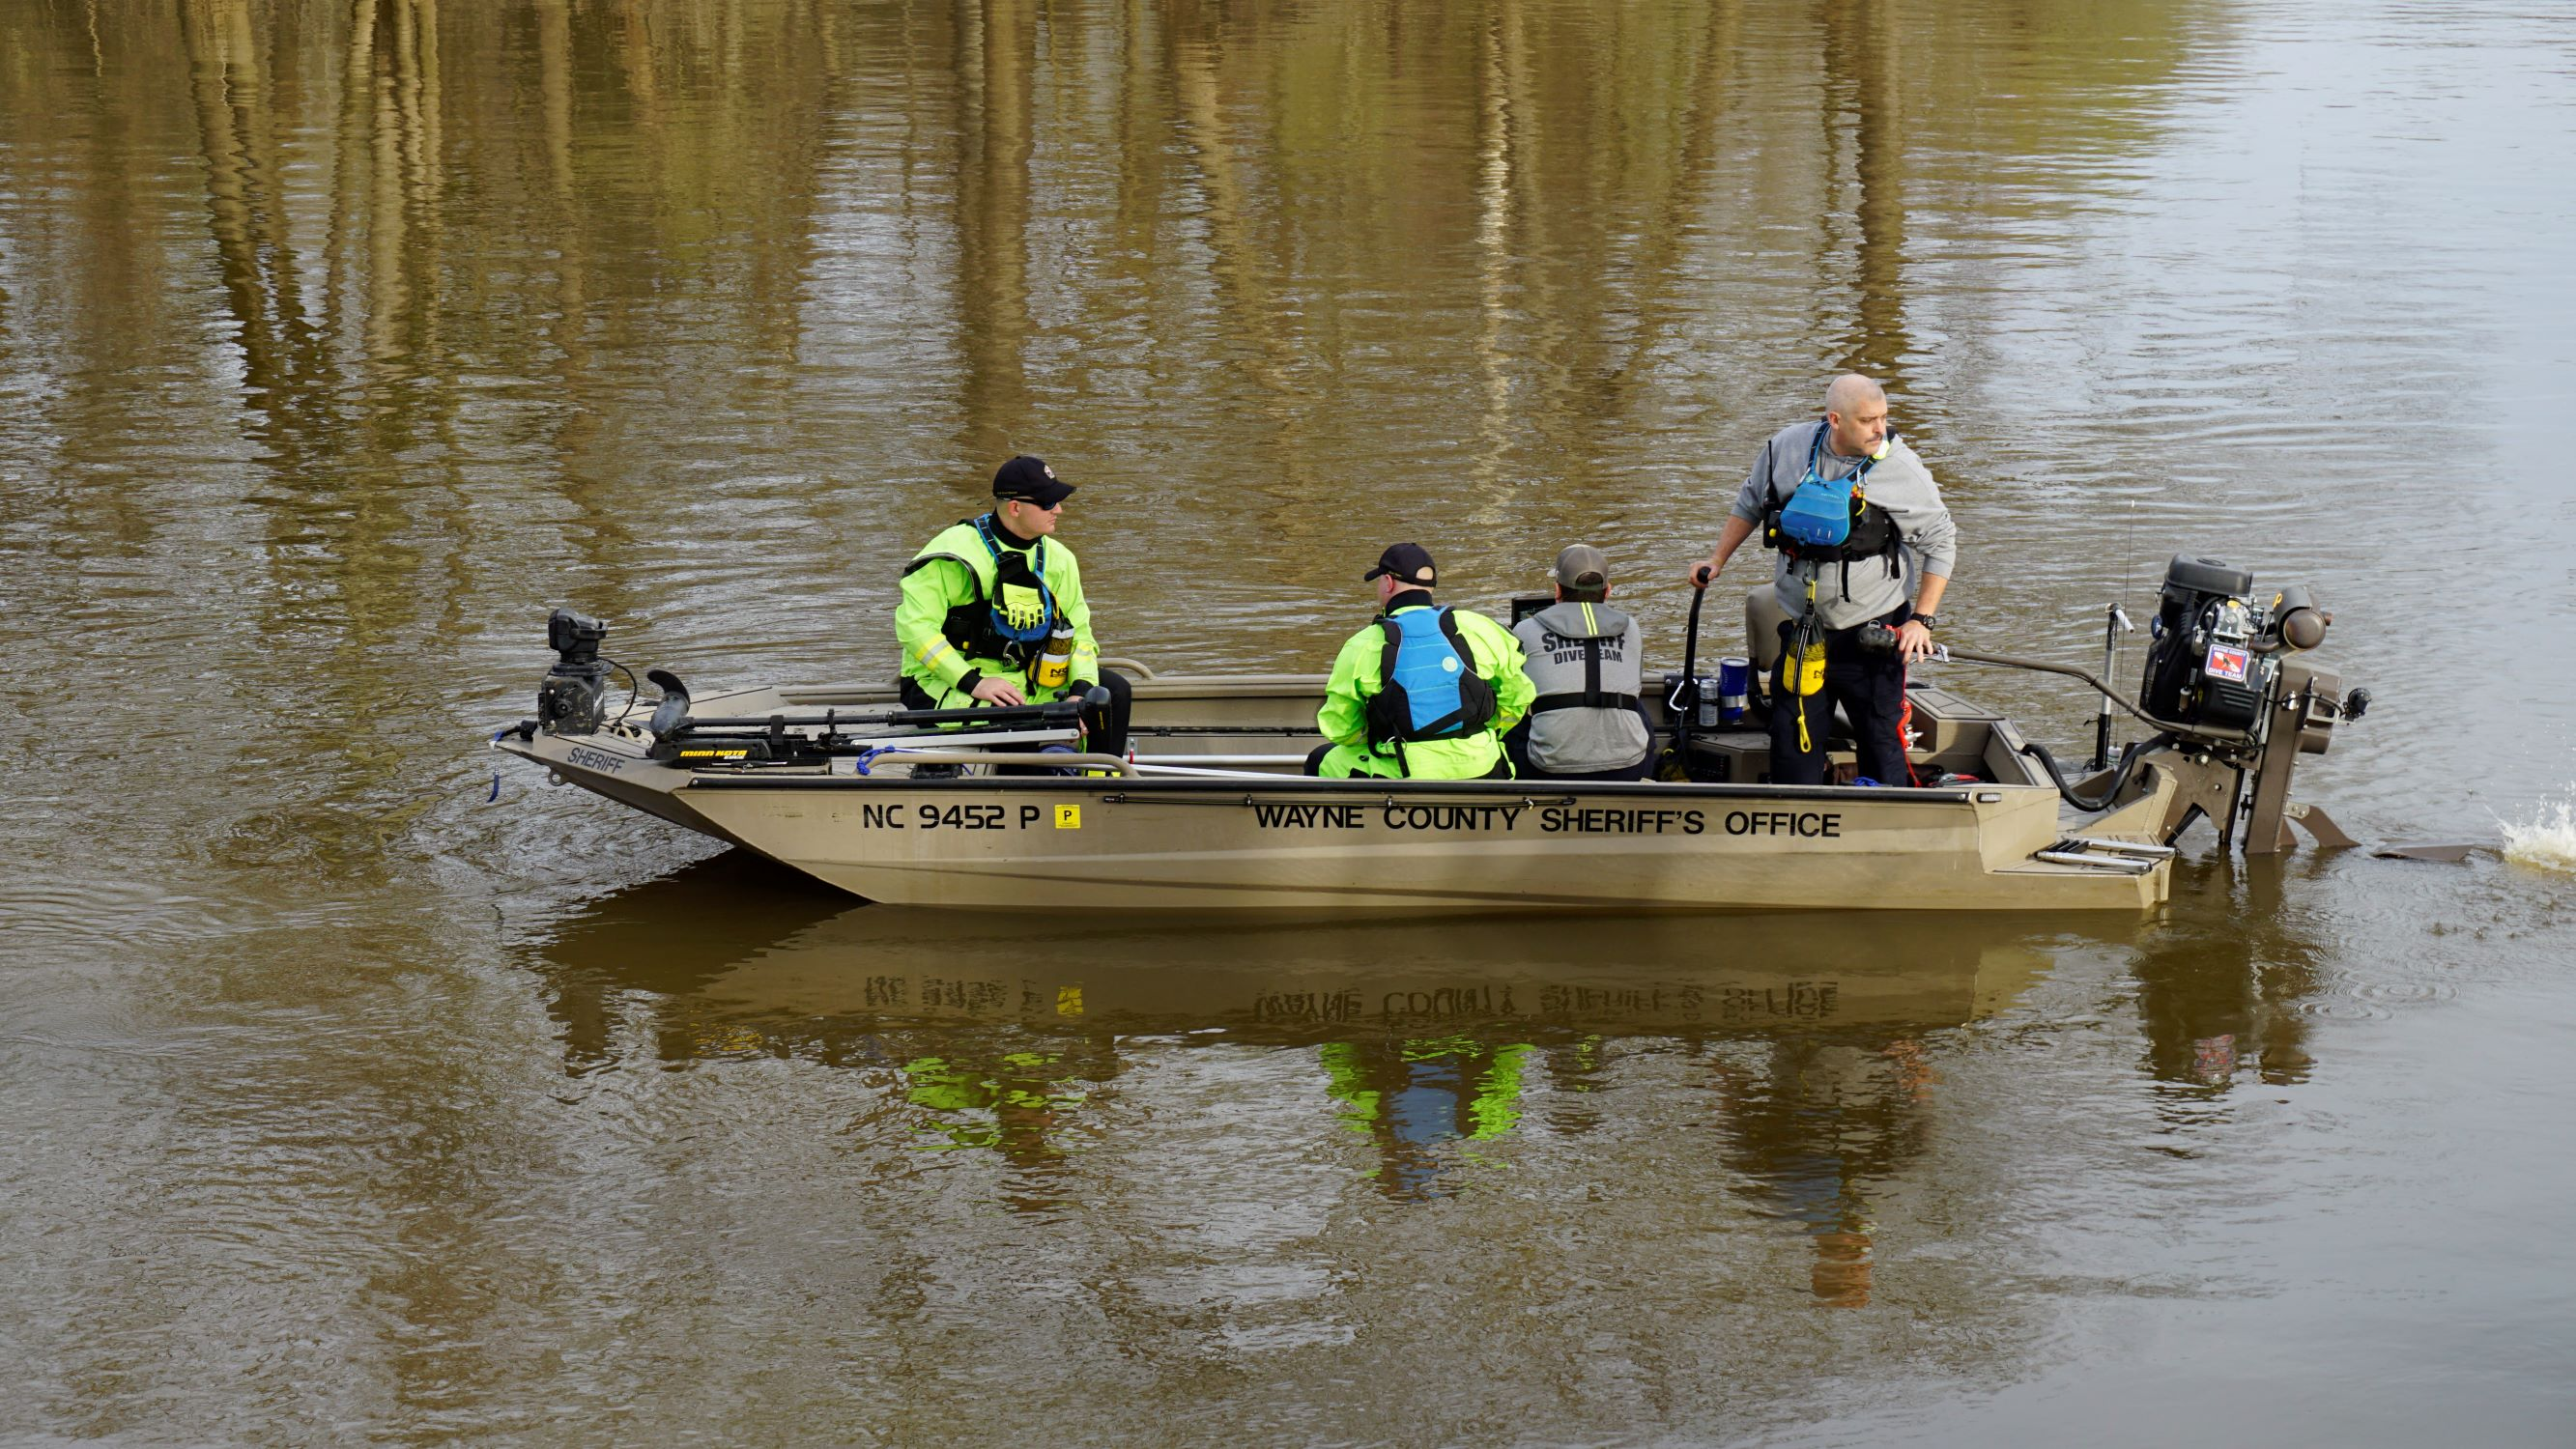 8 PM UPDATE: Neuse River Search & Rescue Slows Down For Evening